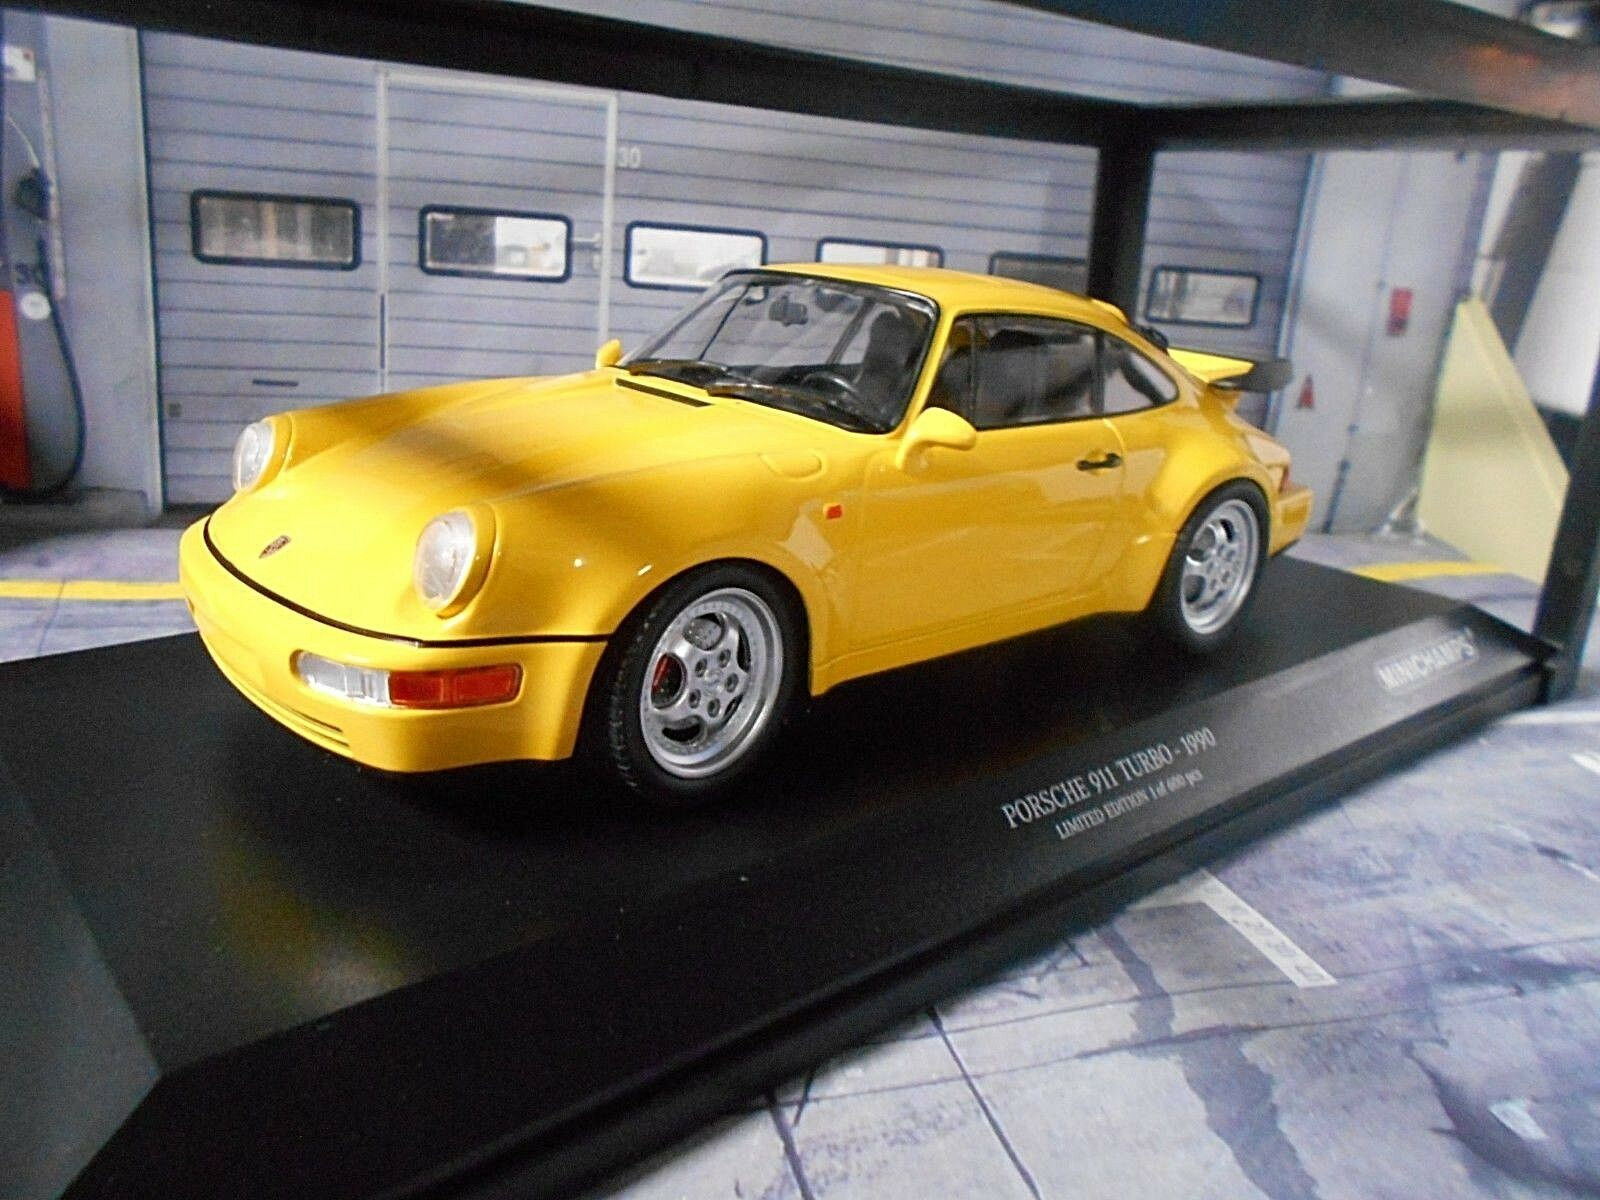 PORSCHE 911 964 Turbo Coupe 1990 yellow yellow NEW NEU Minichamps Diecast  1 18